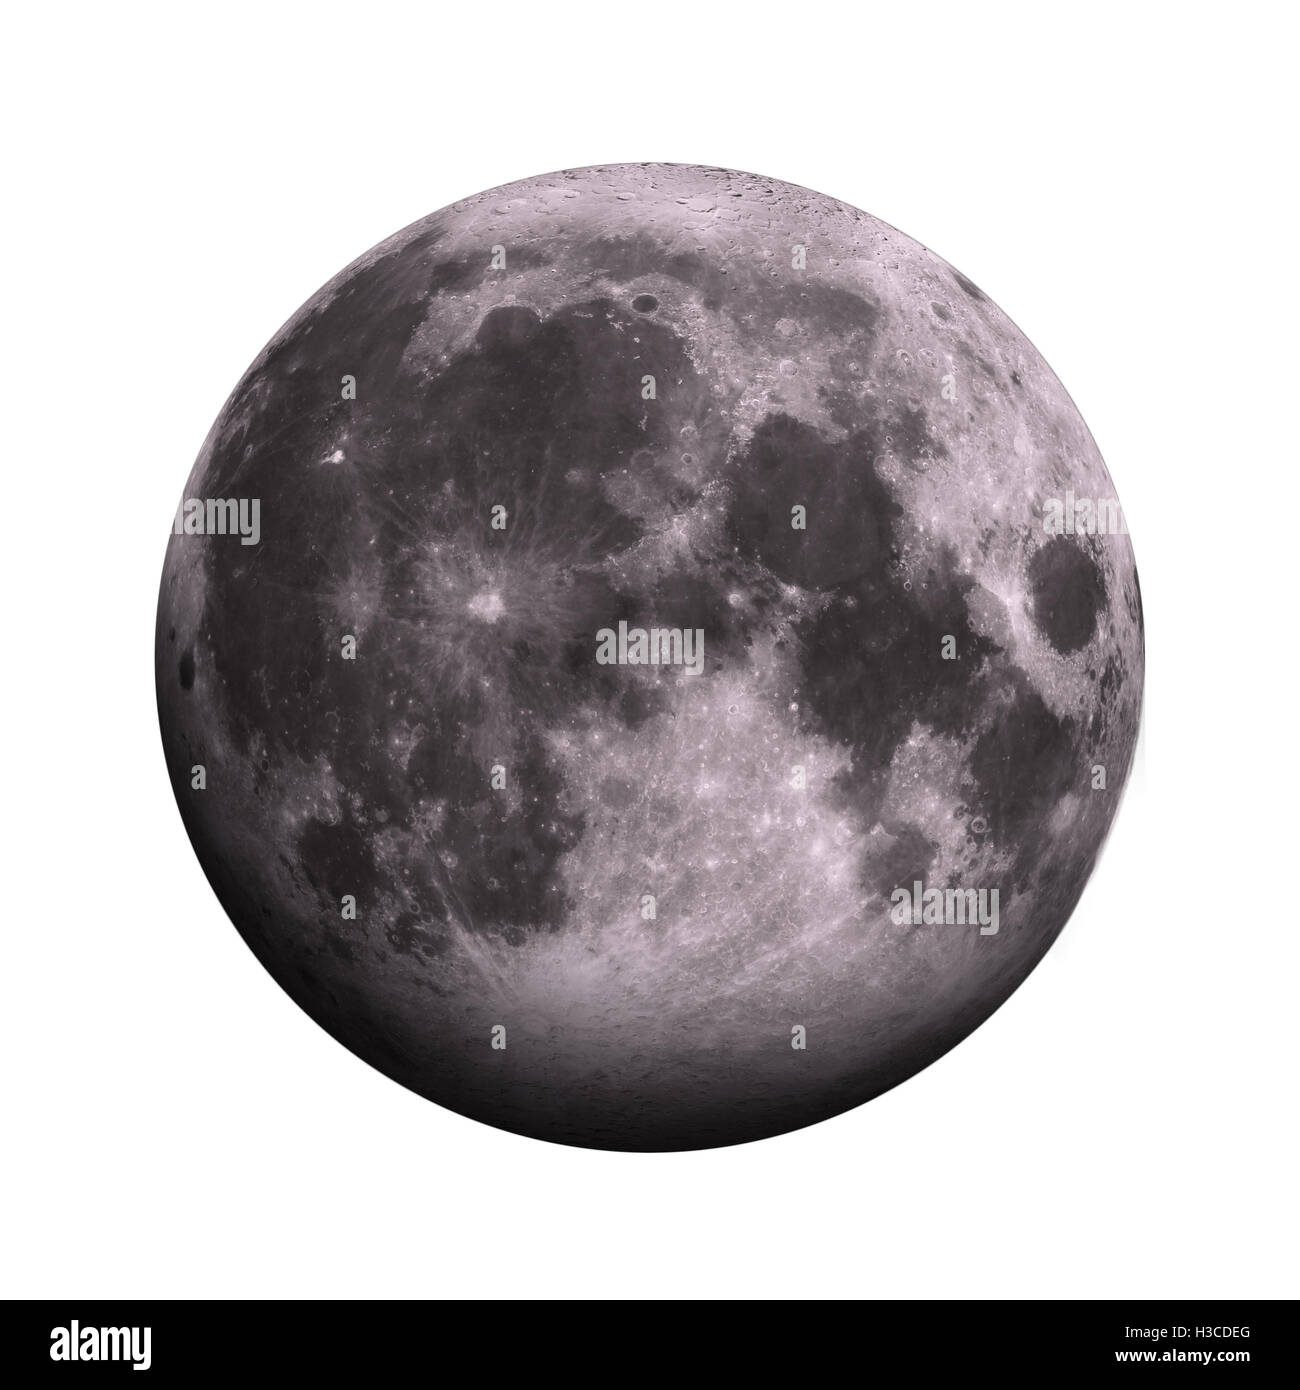 Solar System - Moon. Isolated planet on white background. Elements of this image furnished by NASA - Stock Image